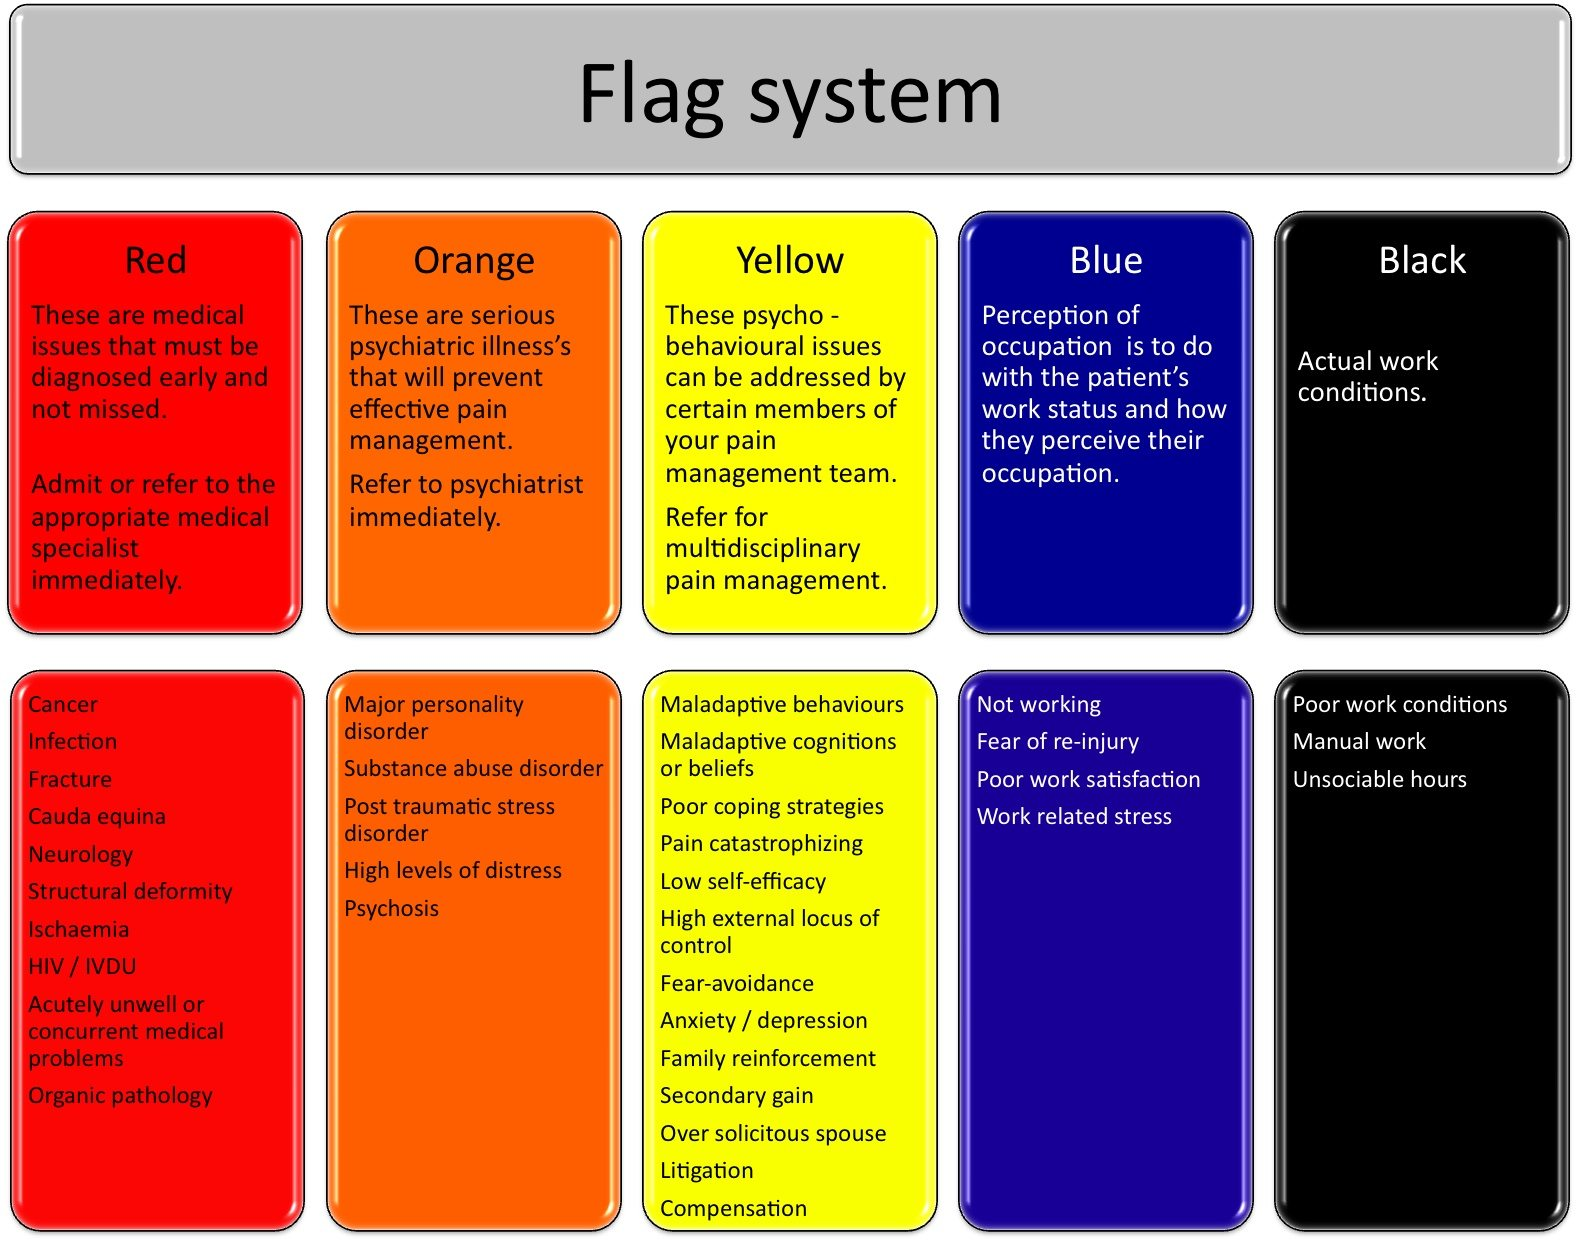 Figure 1. The flag system in evaluating chronic pain